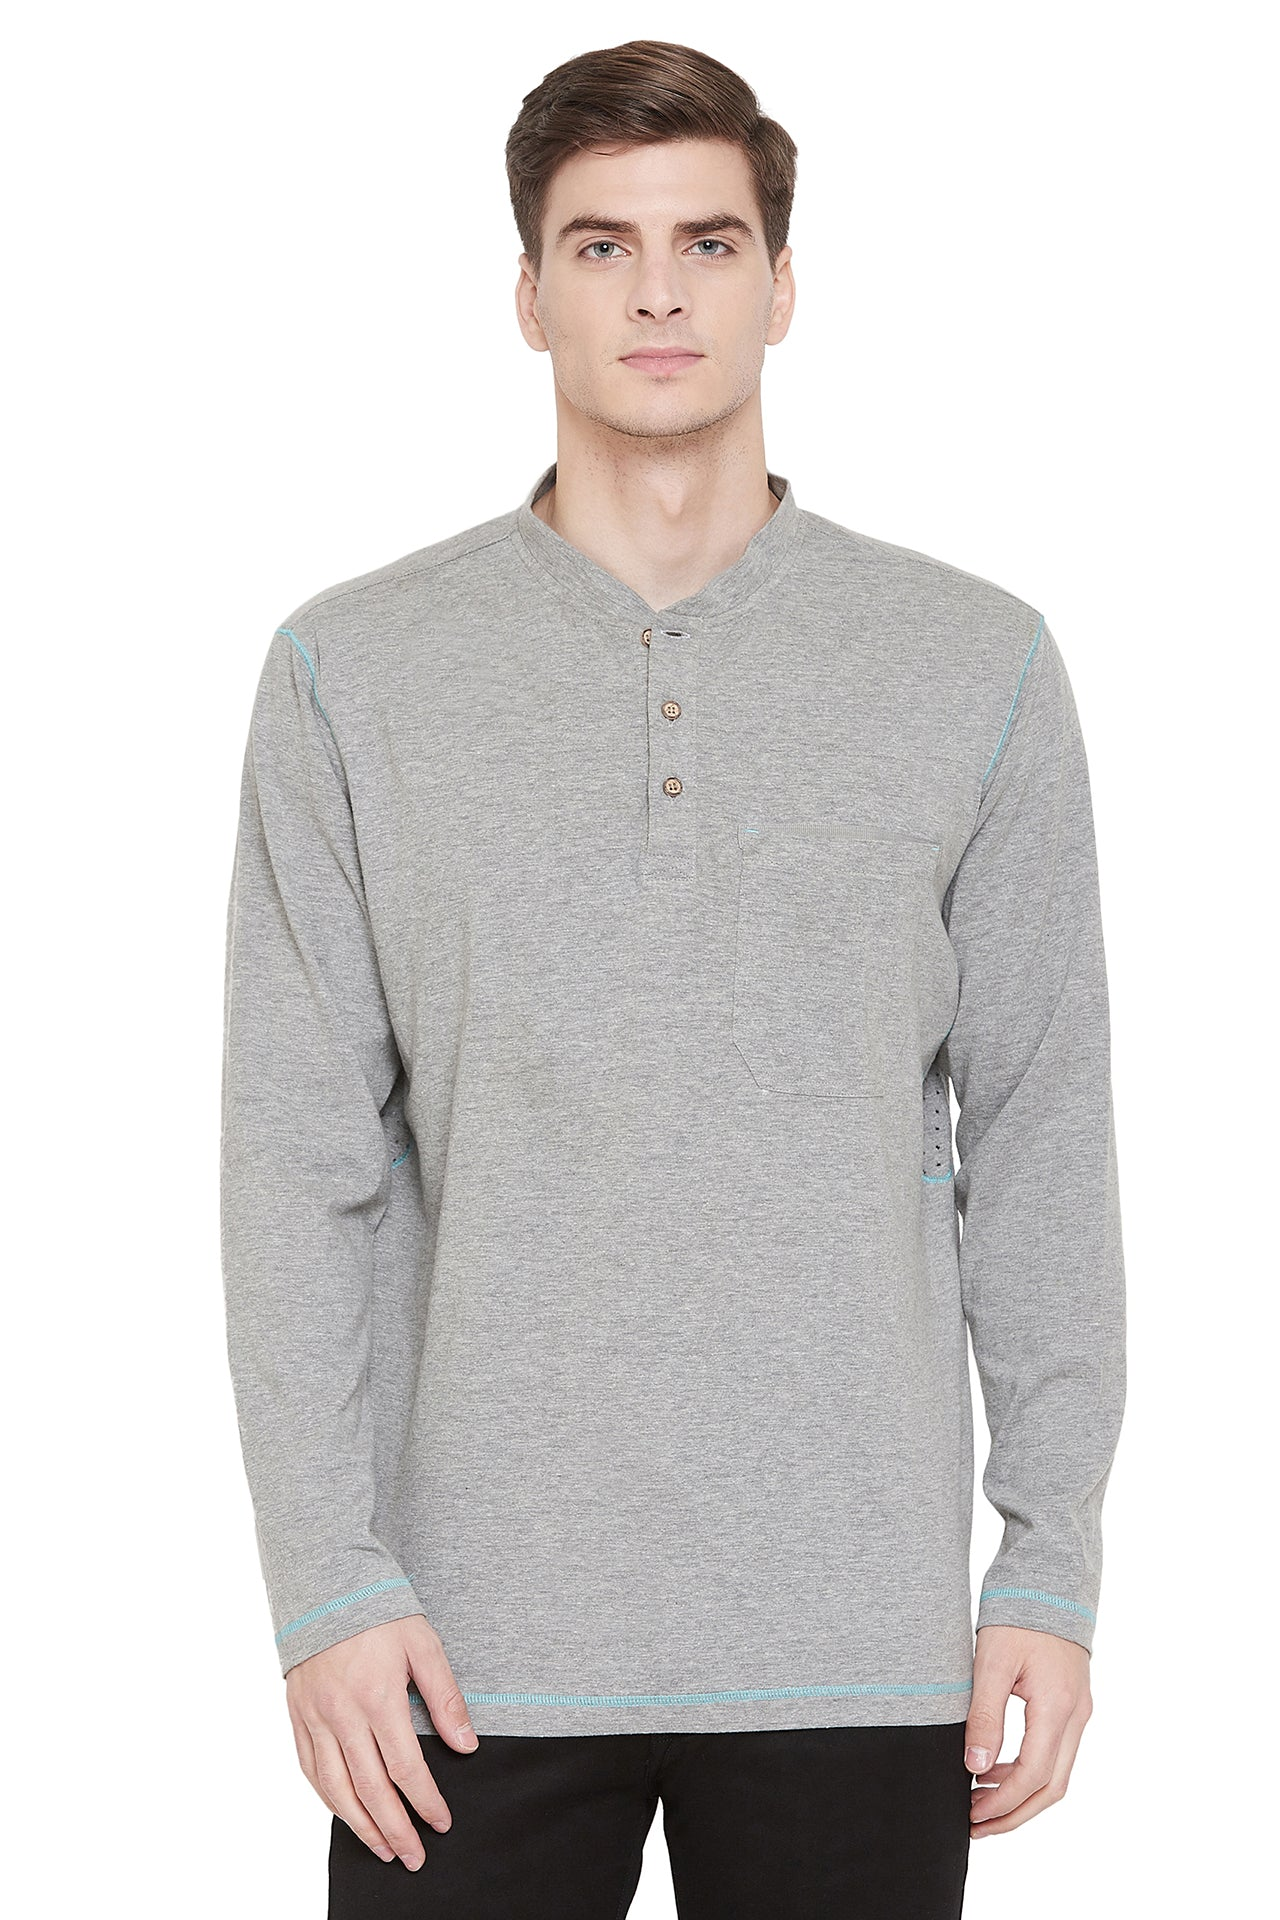 TuffRider Men's Voltage Long Sleeve Tee - Breeches.com